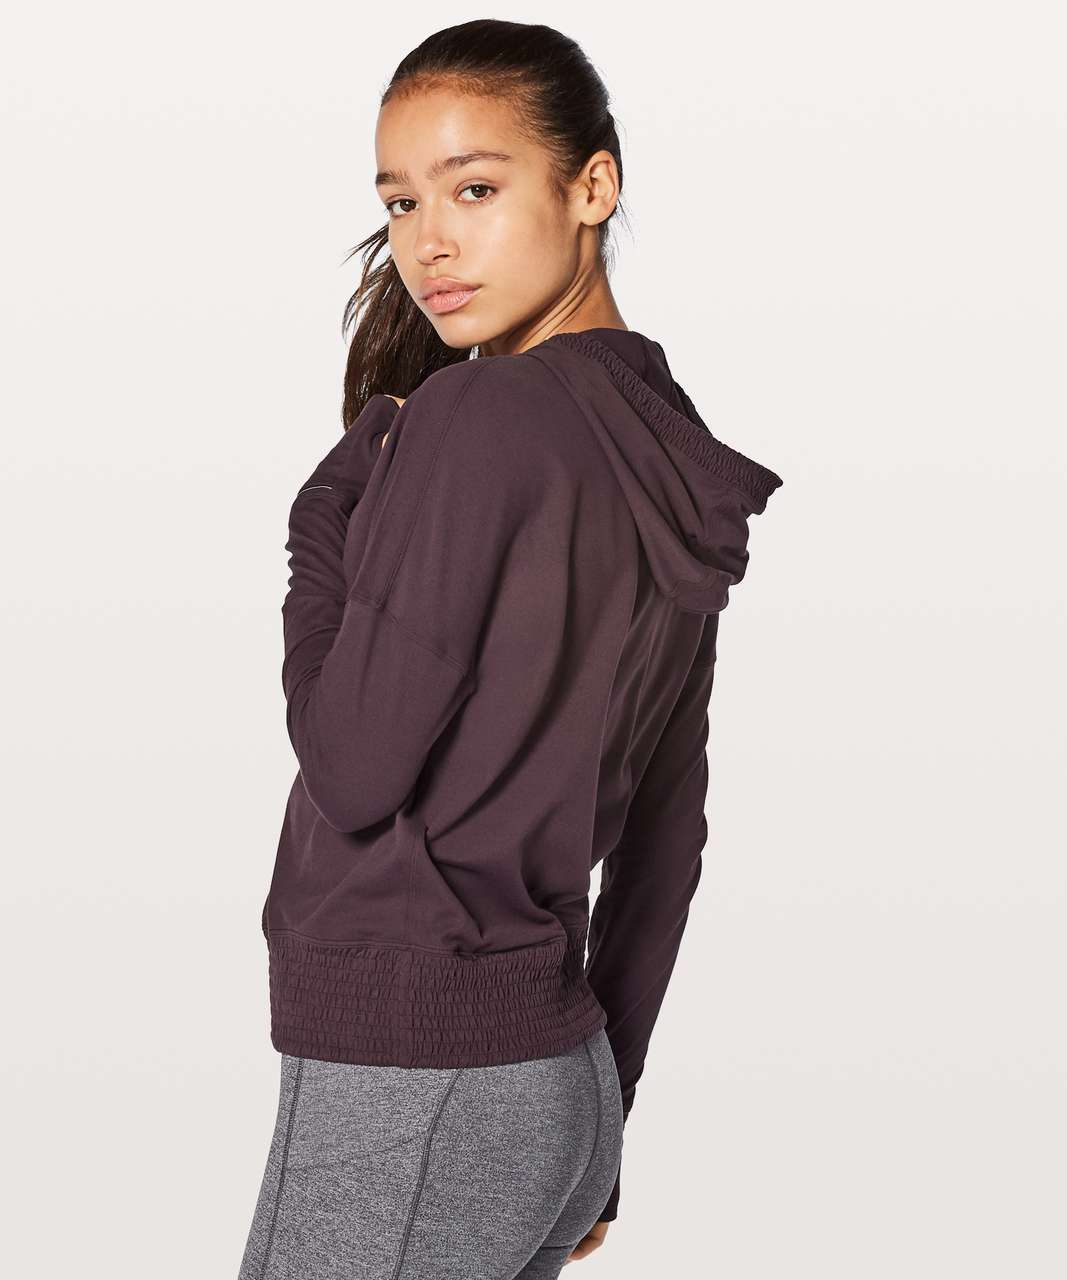 Lululemon Lead The Pack Hoodie - Black Cherry